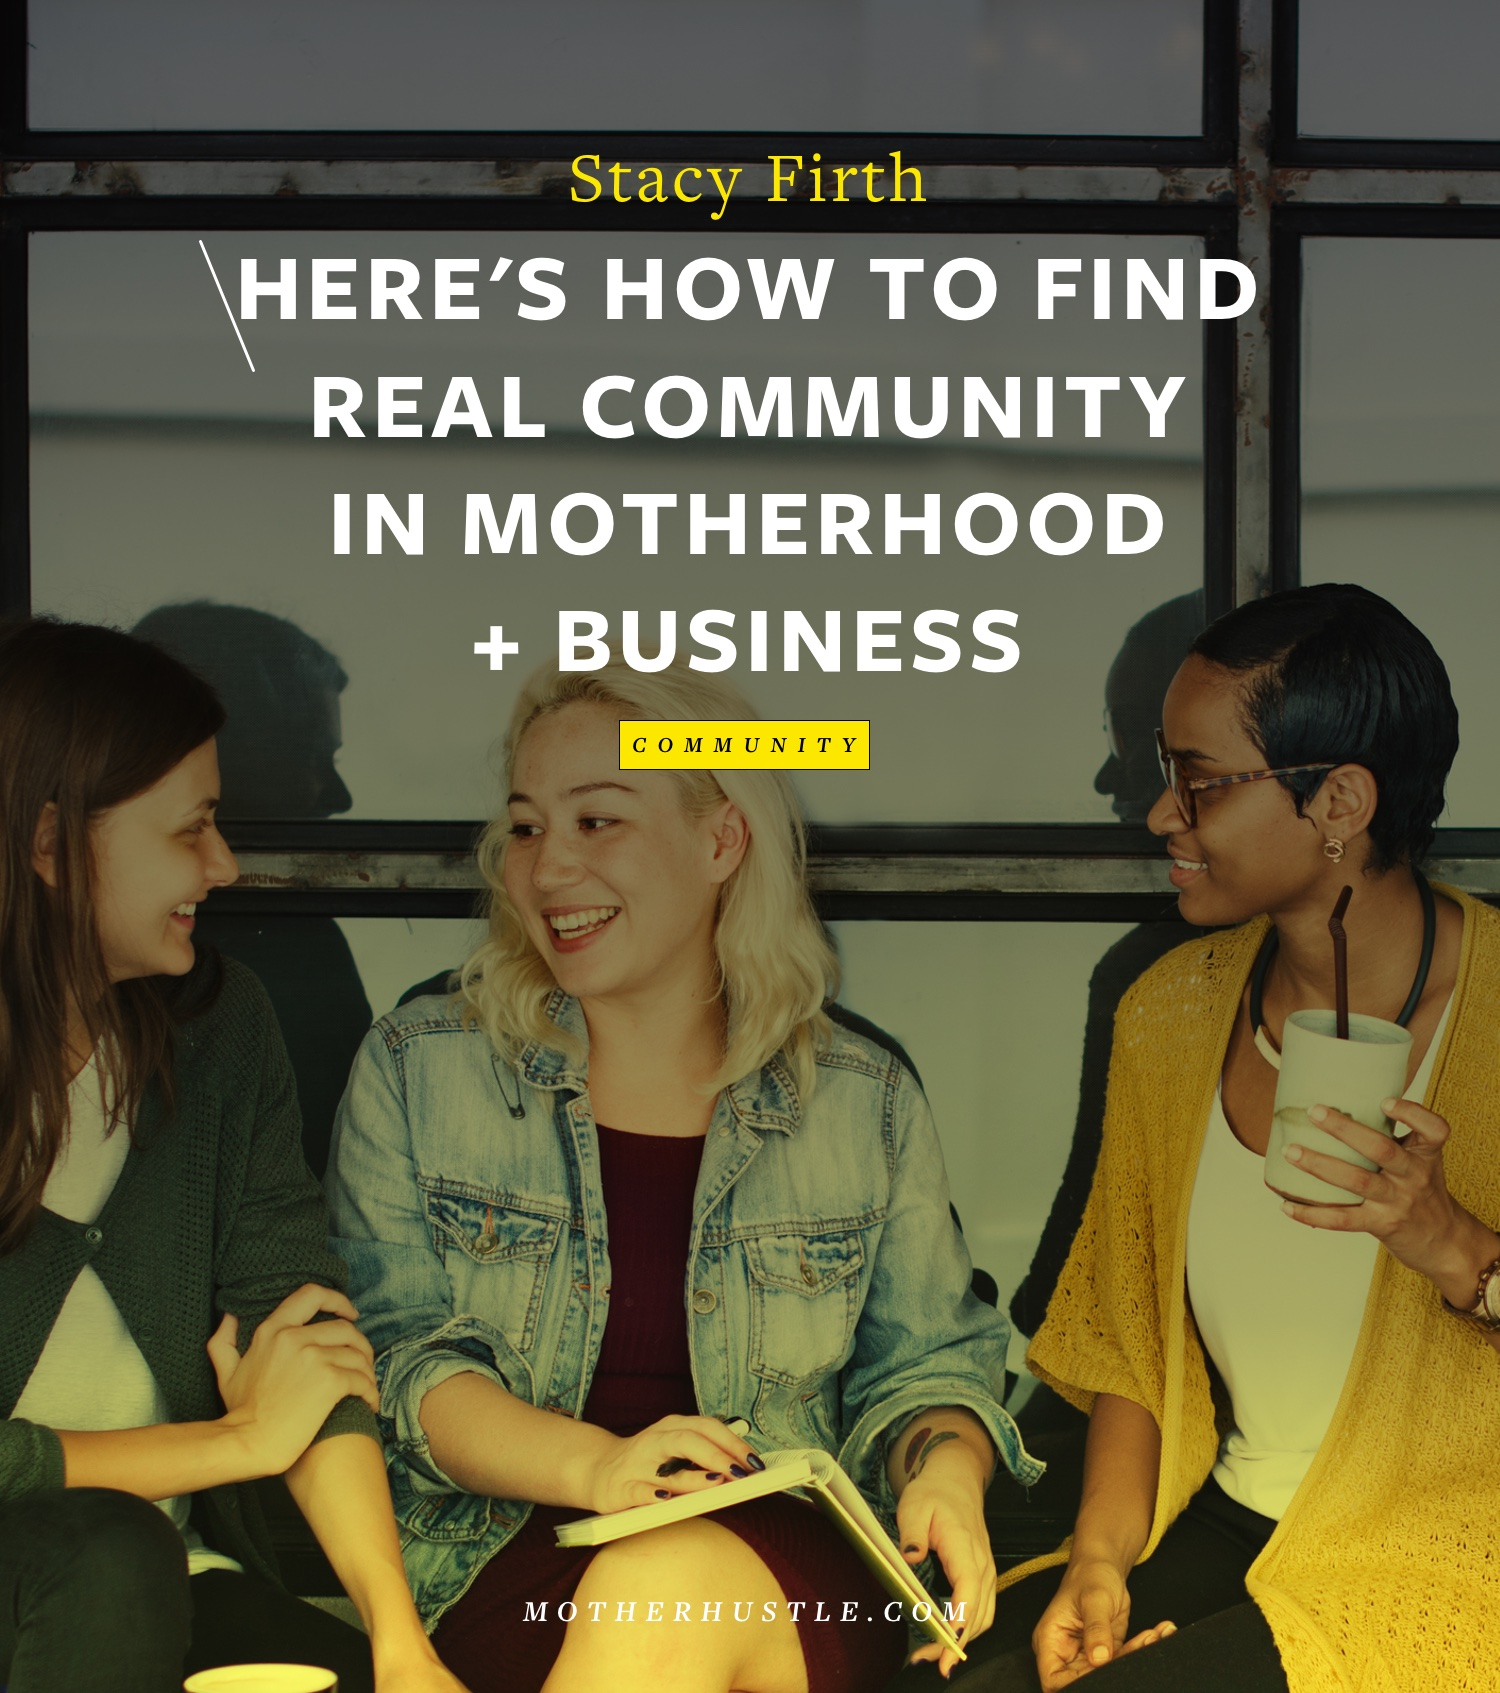 Here's How To Find Real Community In Motherhood + Business - by Stacy Firth for MotherHustle